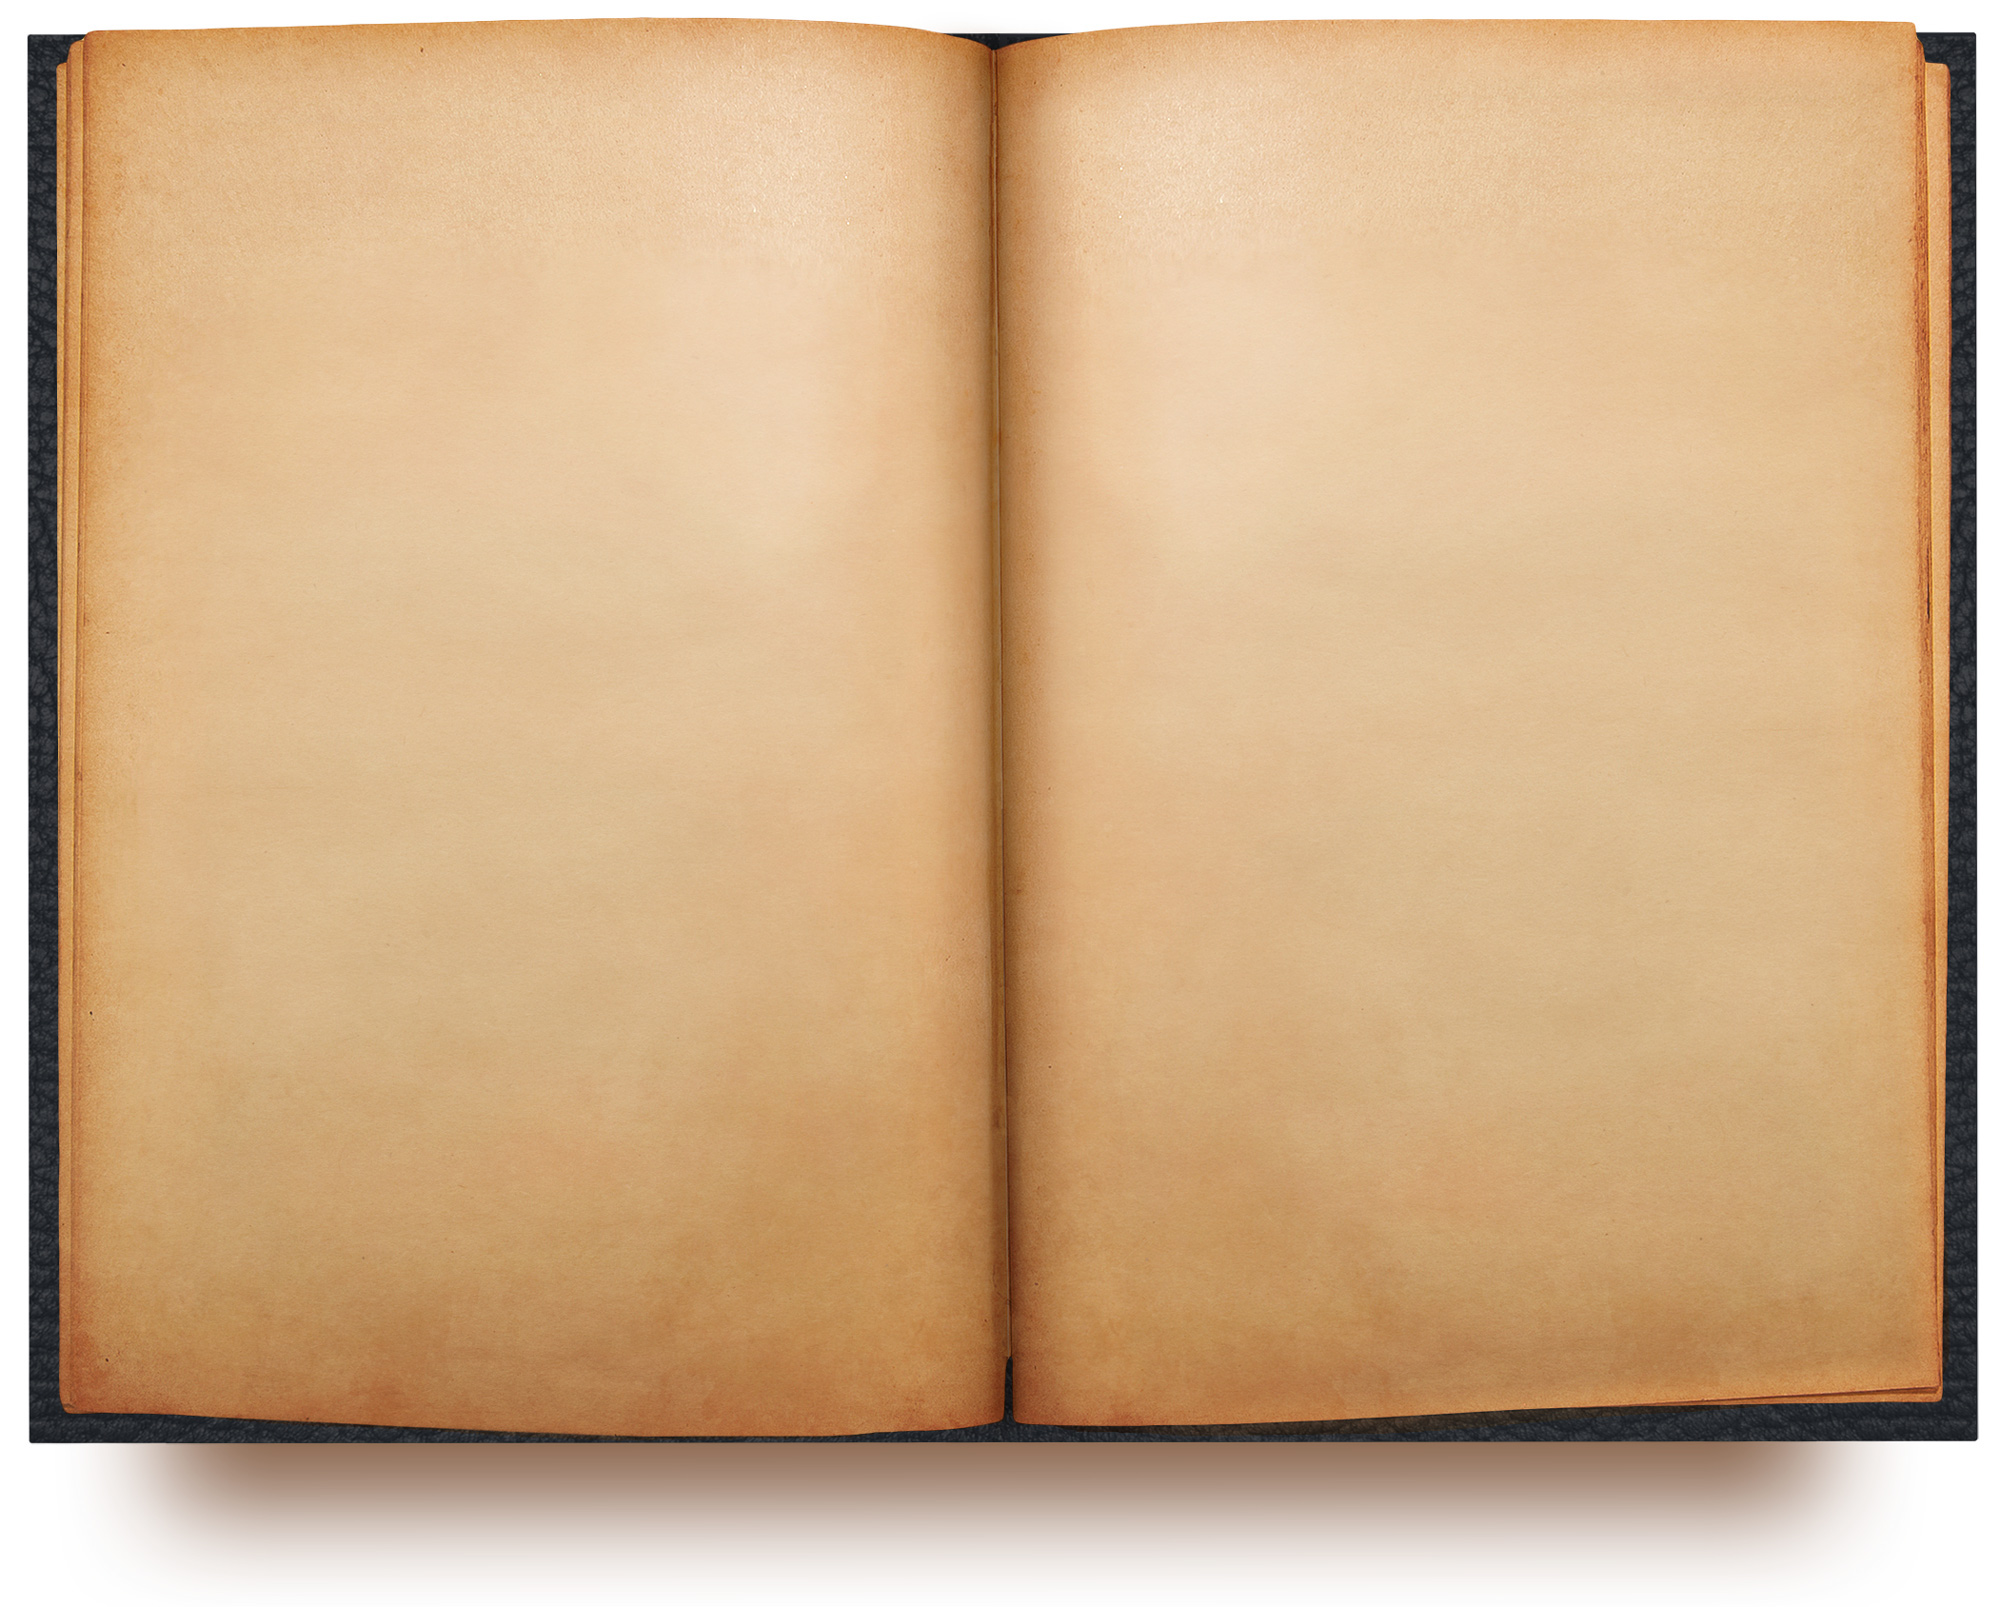 Open Book, Blank Pages on Behance